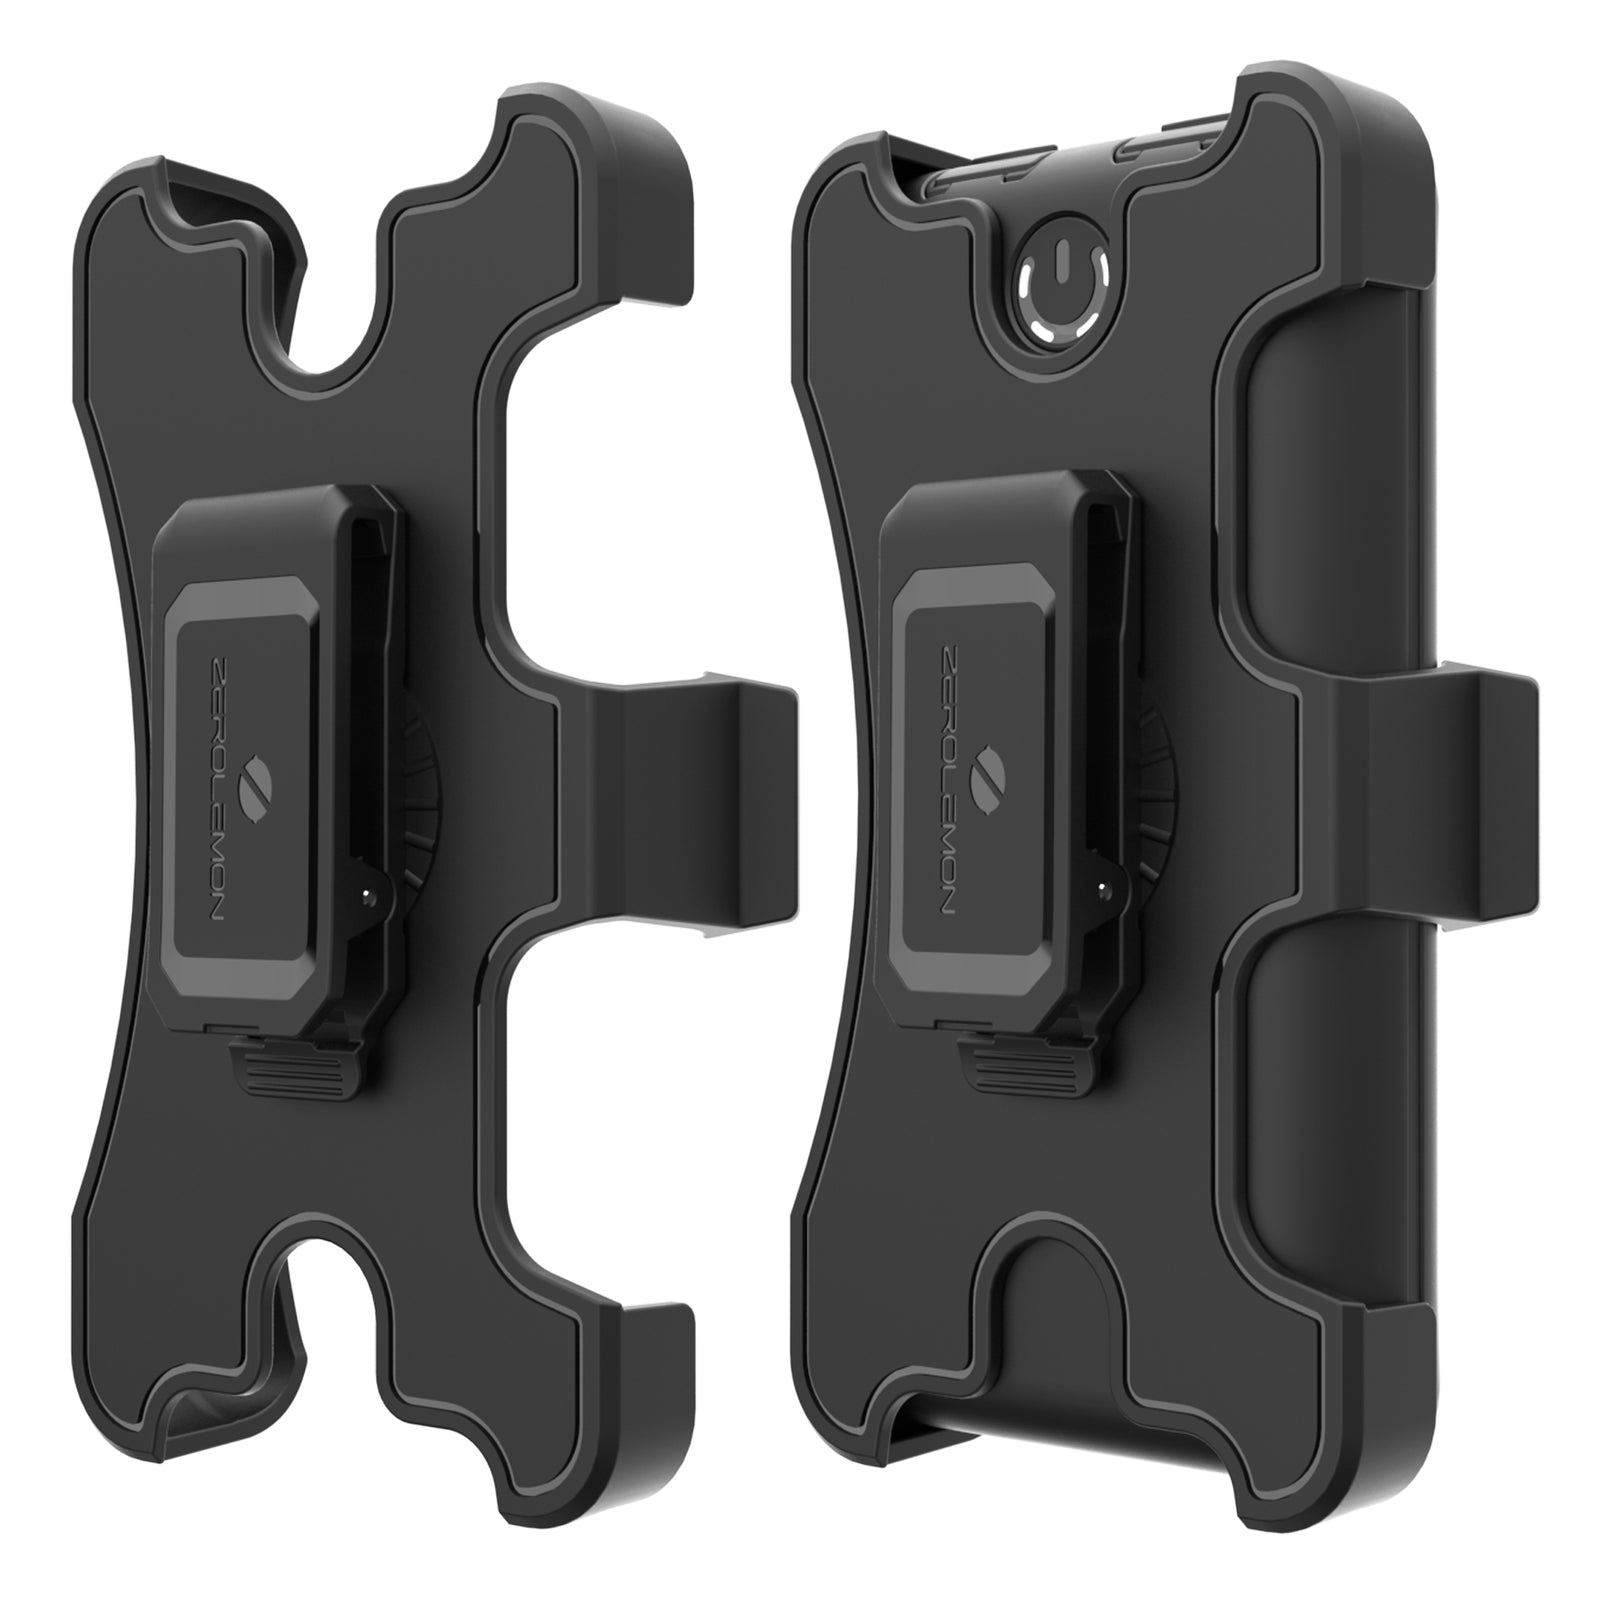 Belt Clip Holster for ZeroLemon ToughJuice 30000mAh Portable Battery Charger